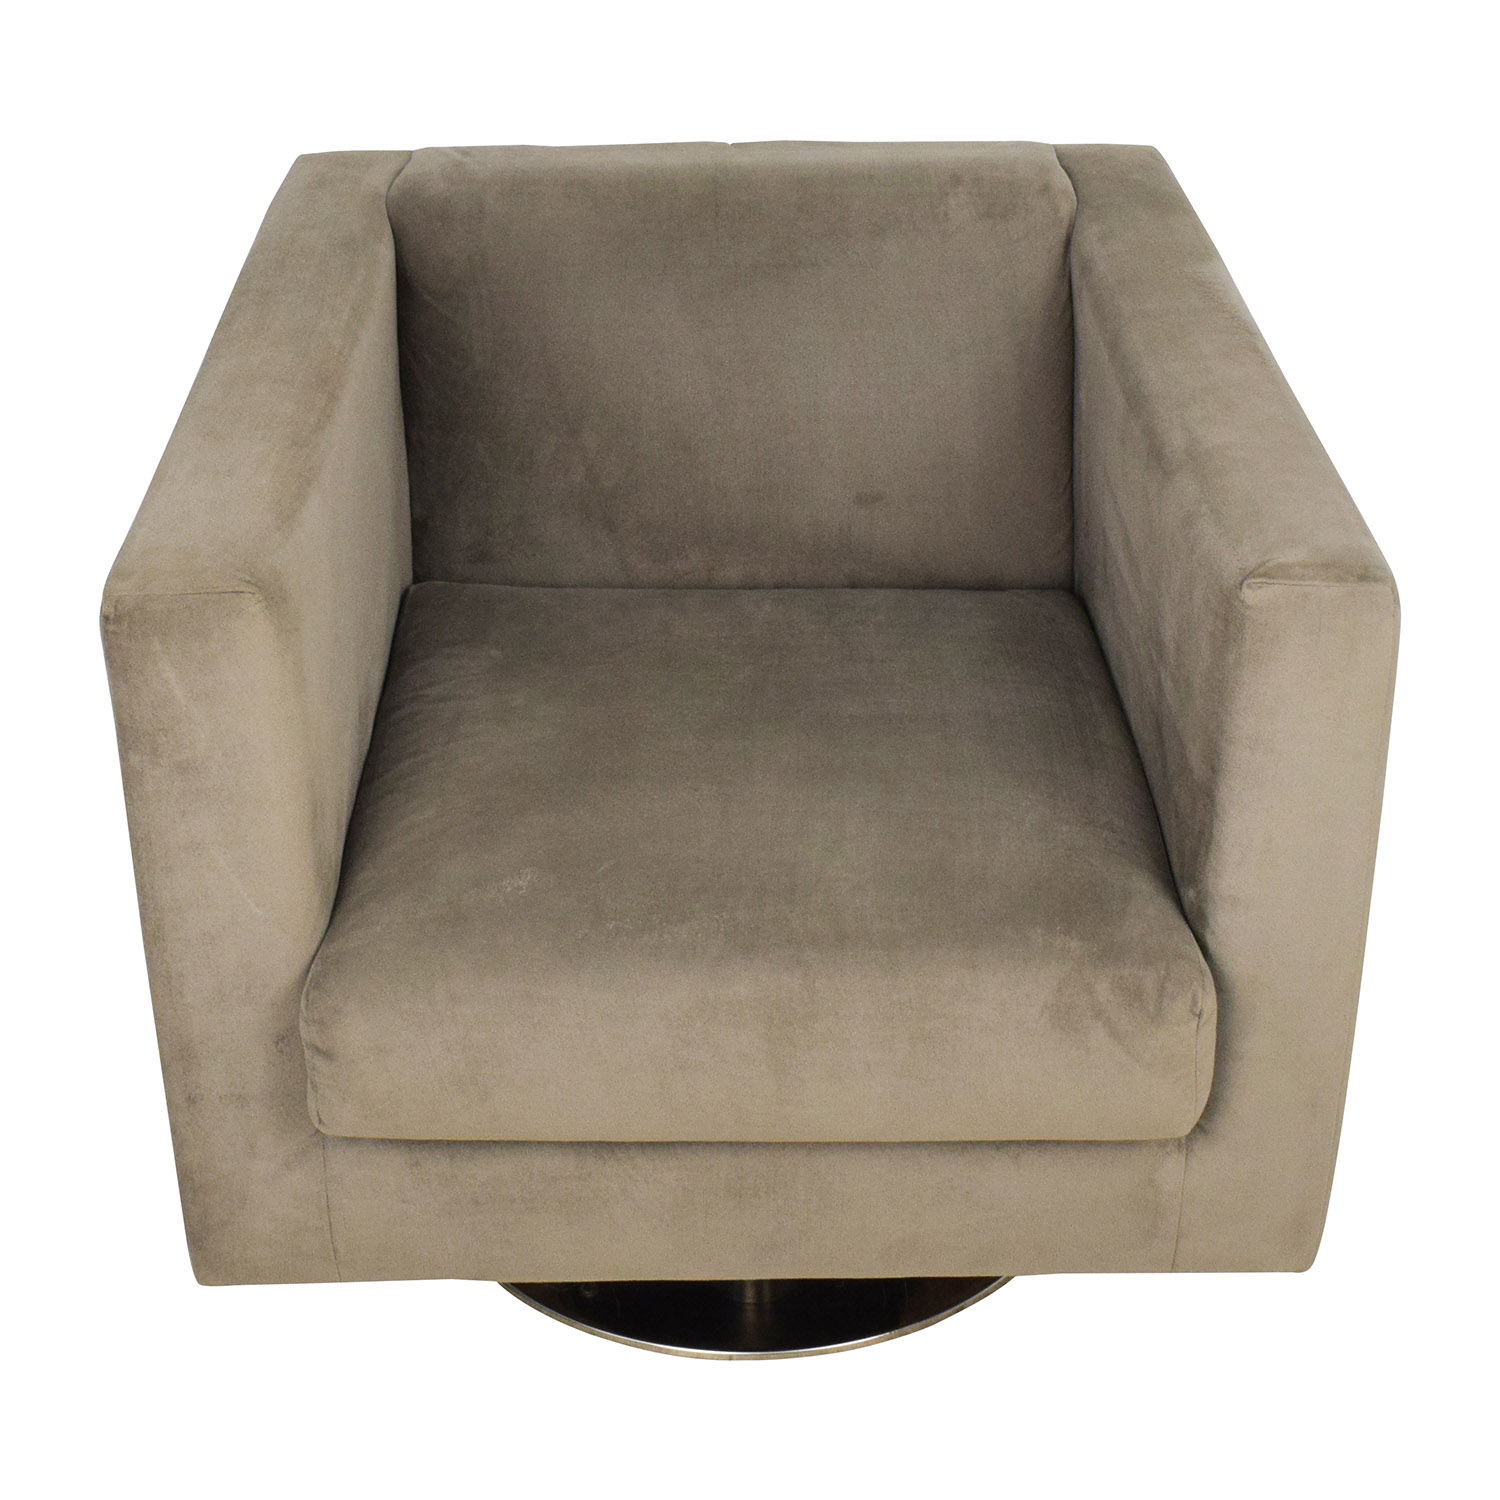 Rowe Rowe Grey Swivel Chair for sale